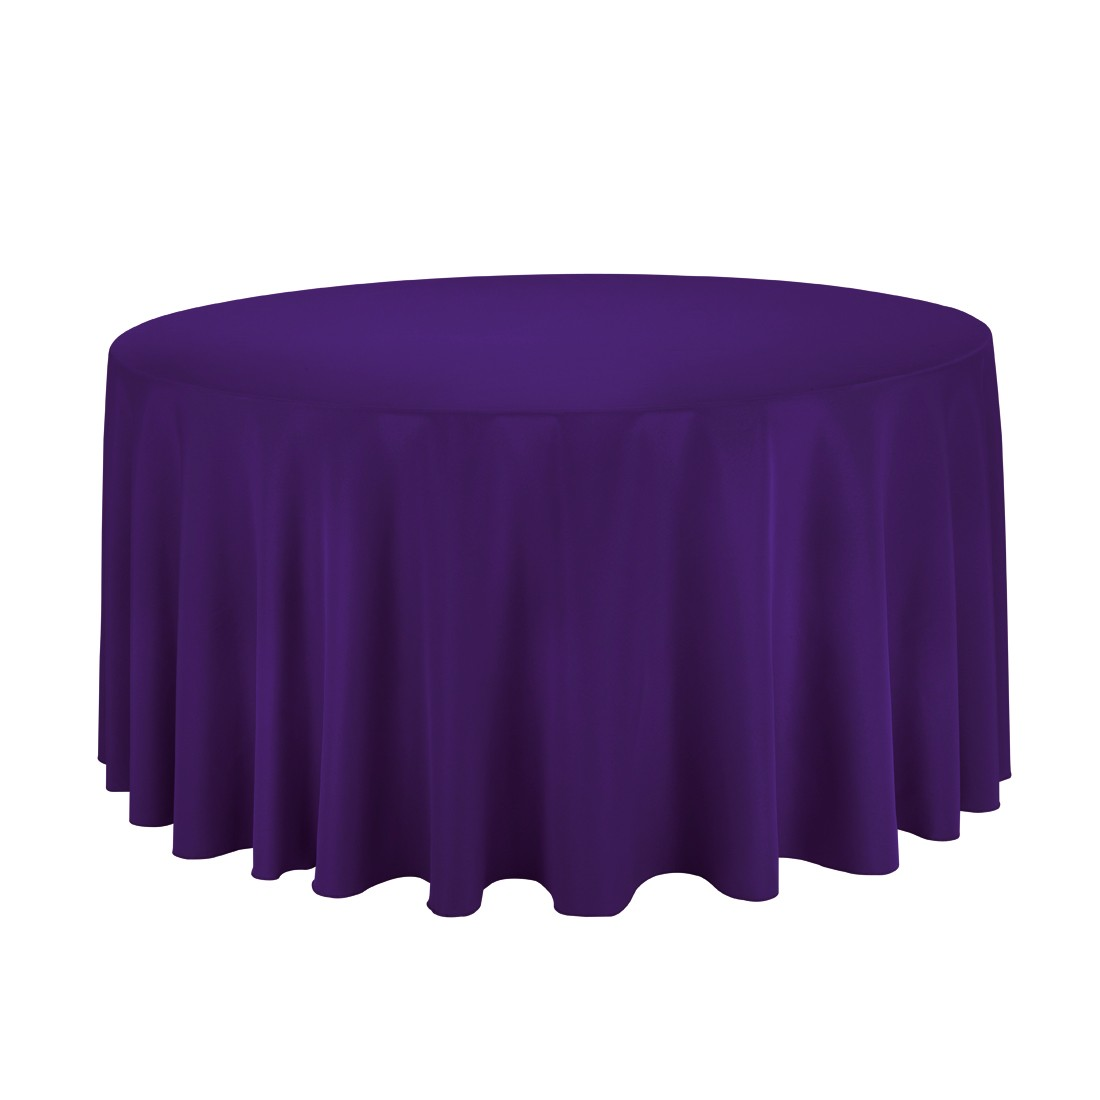 Unique Colors 120 Round Tablecloth for Dining Room Furniture Ideas: Wondrous Purple 120 Round Tablecloth